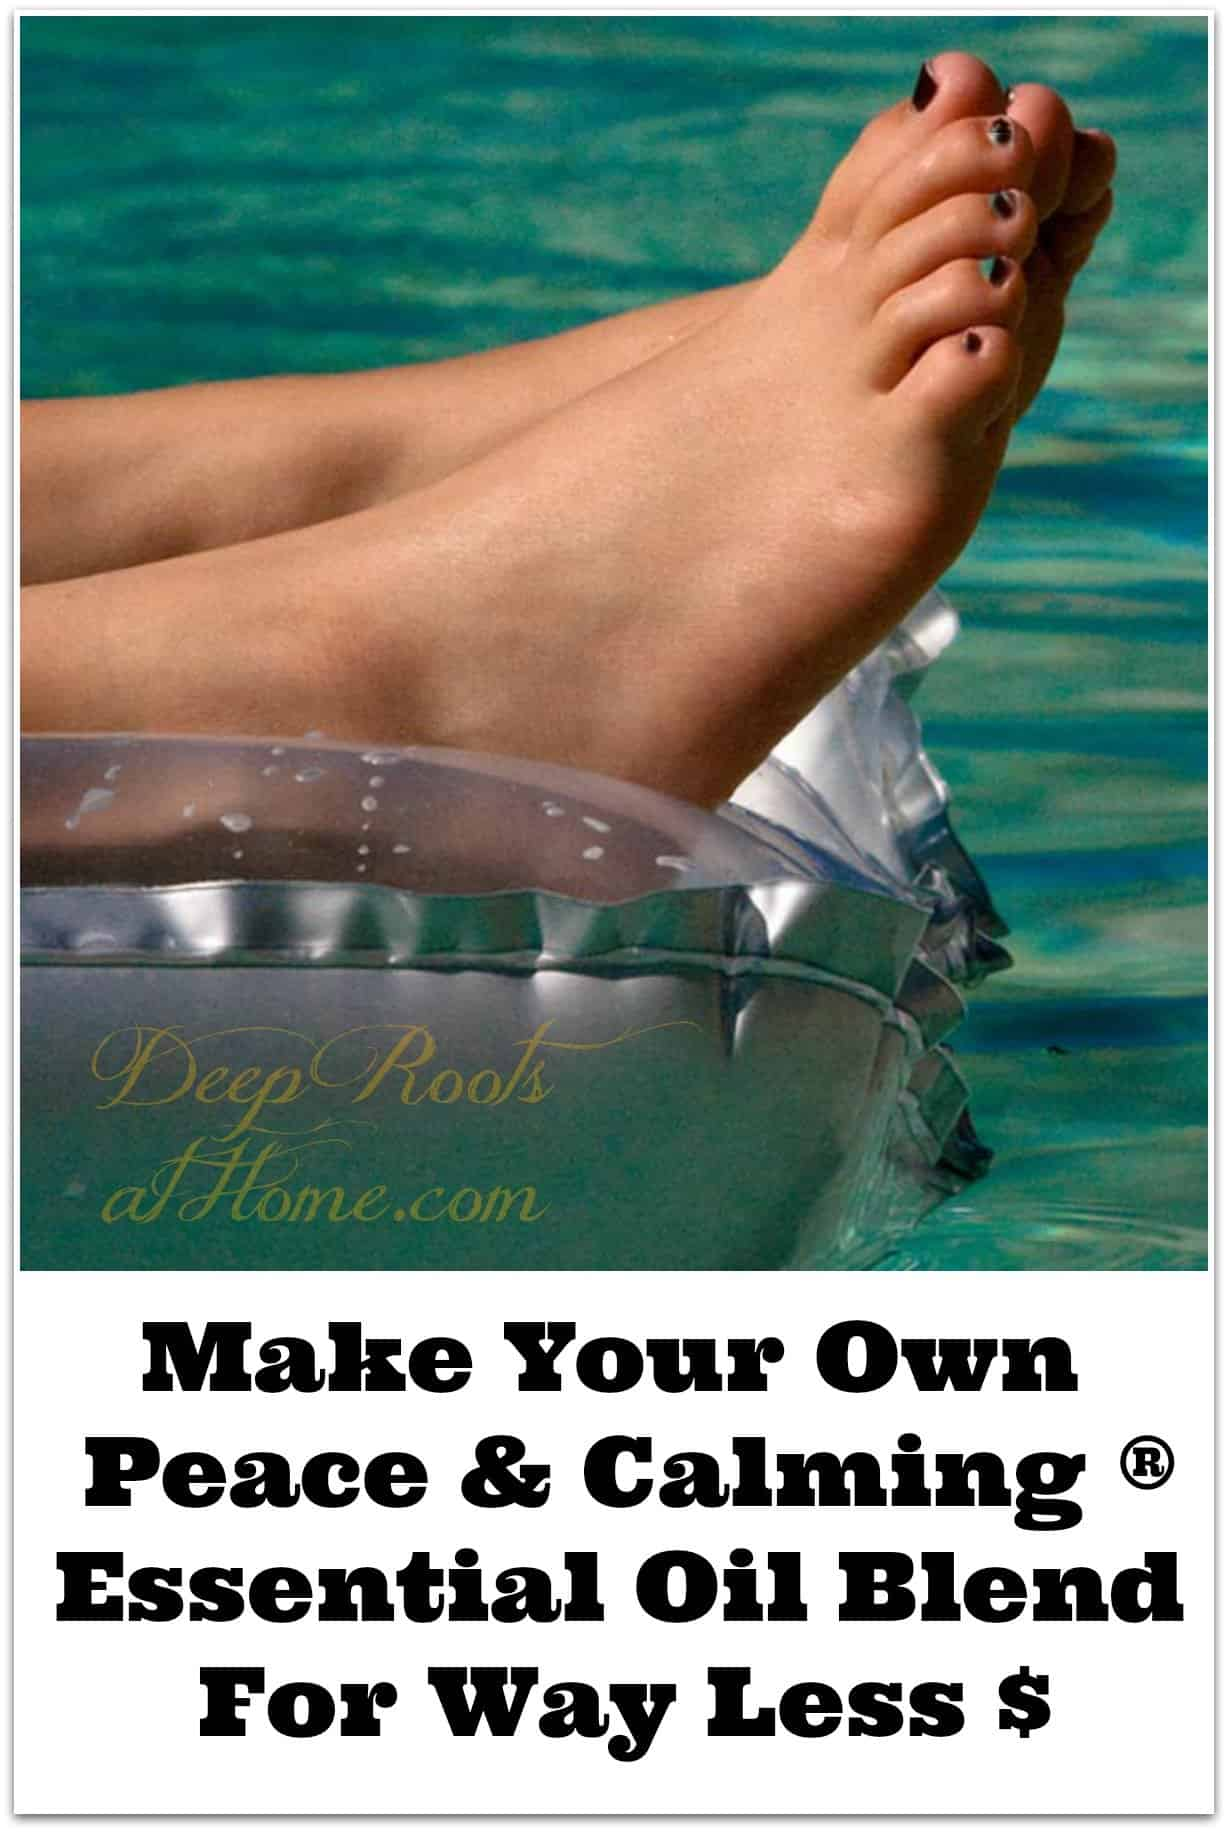 Make Your Own Peace & Calming ® Essential Oil Blend For Way Less $. My recipe for peace and calming blend.